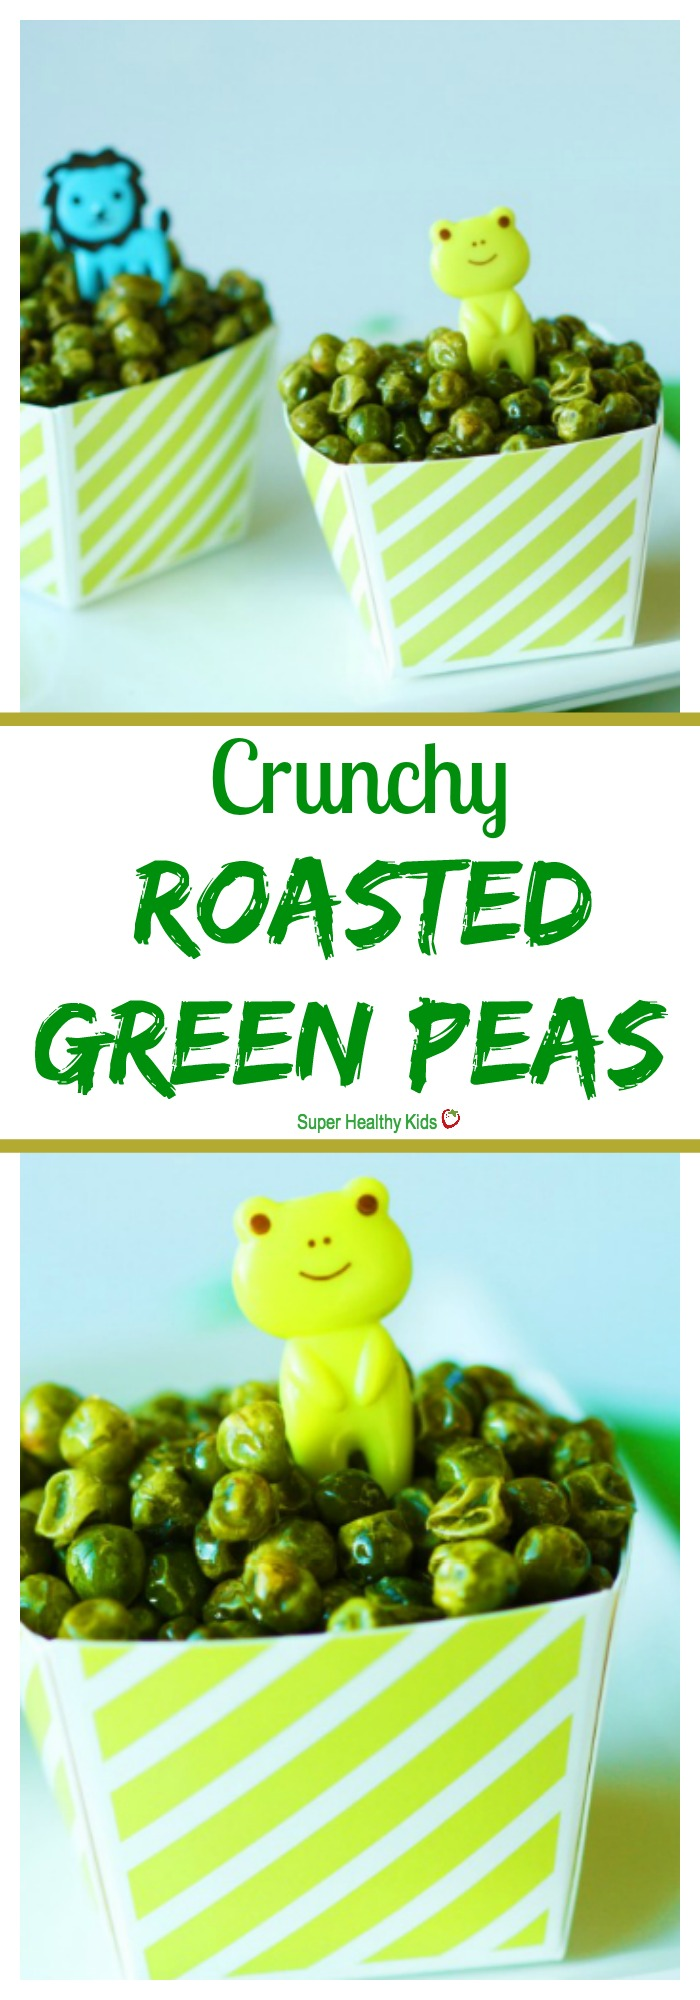 FOOD - Crunchy Roasted Green Peas. Crunchy snack for toddlers! http://www.superhealthykids.com/crunchy-roasted-green-peas/